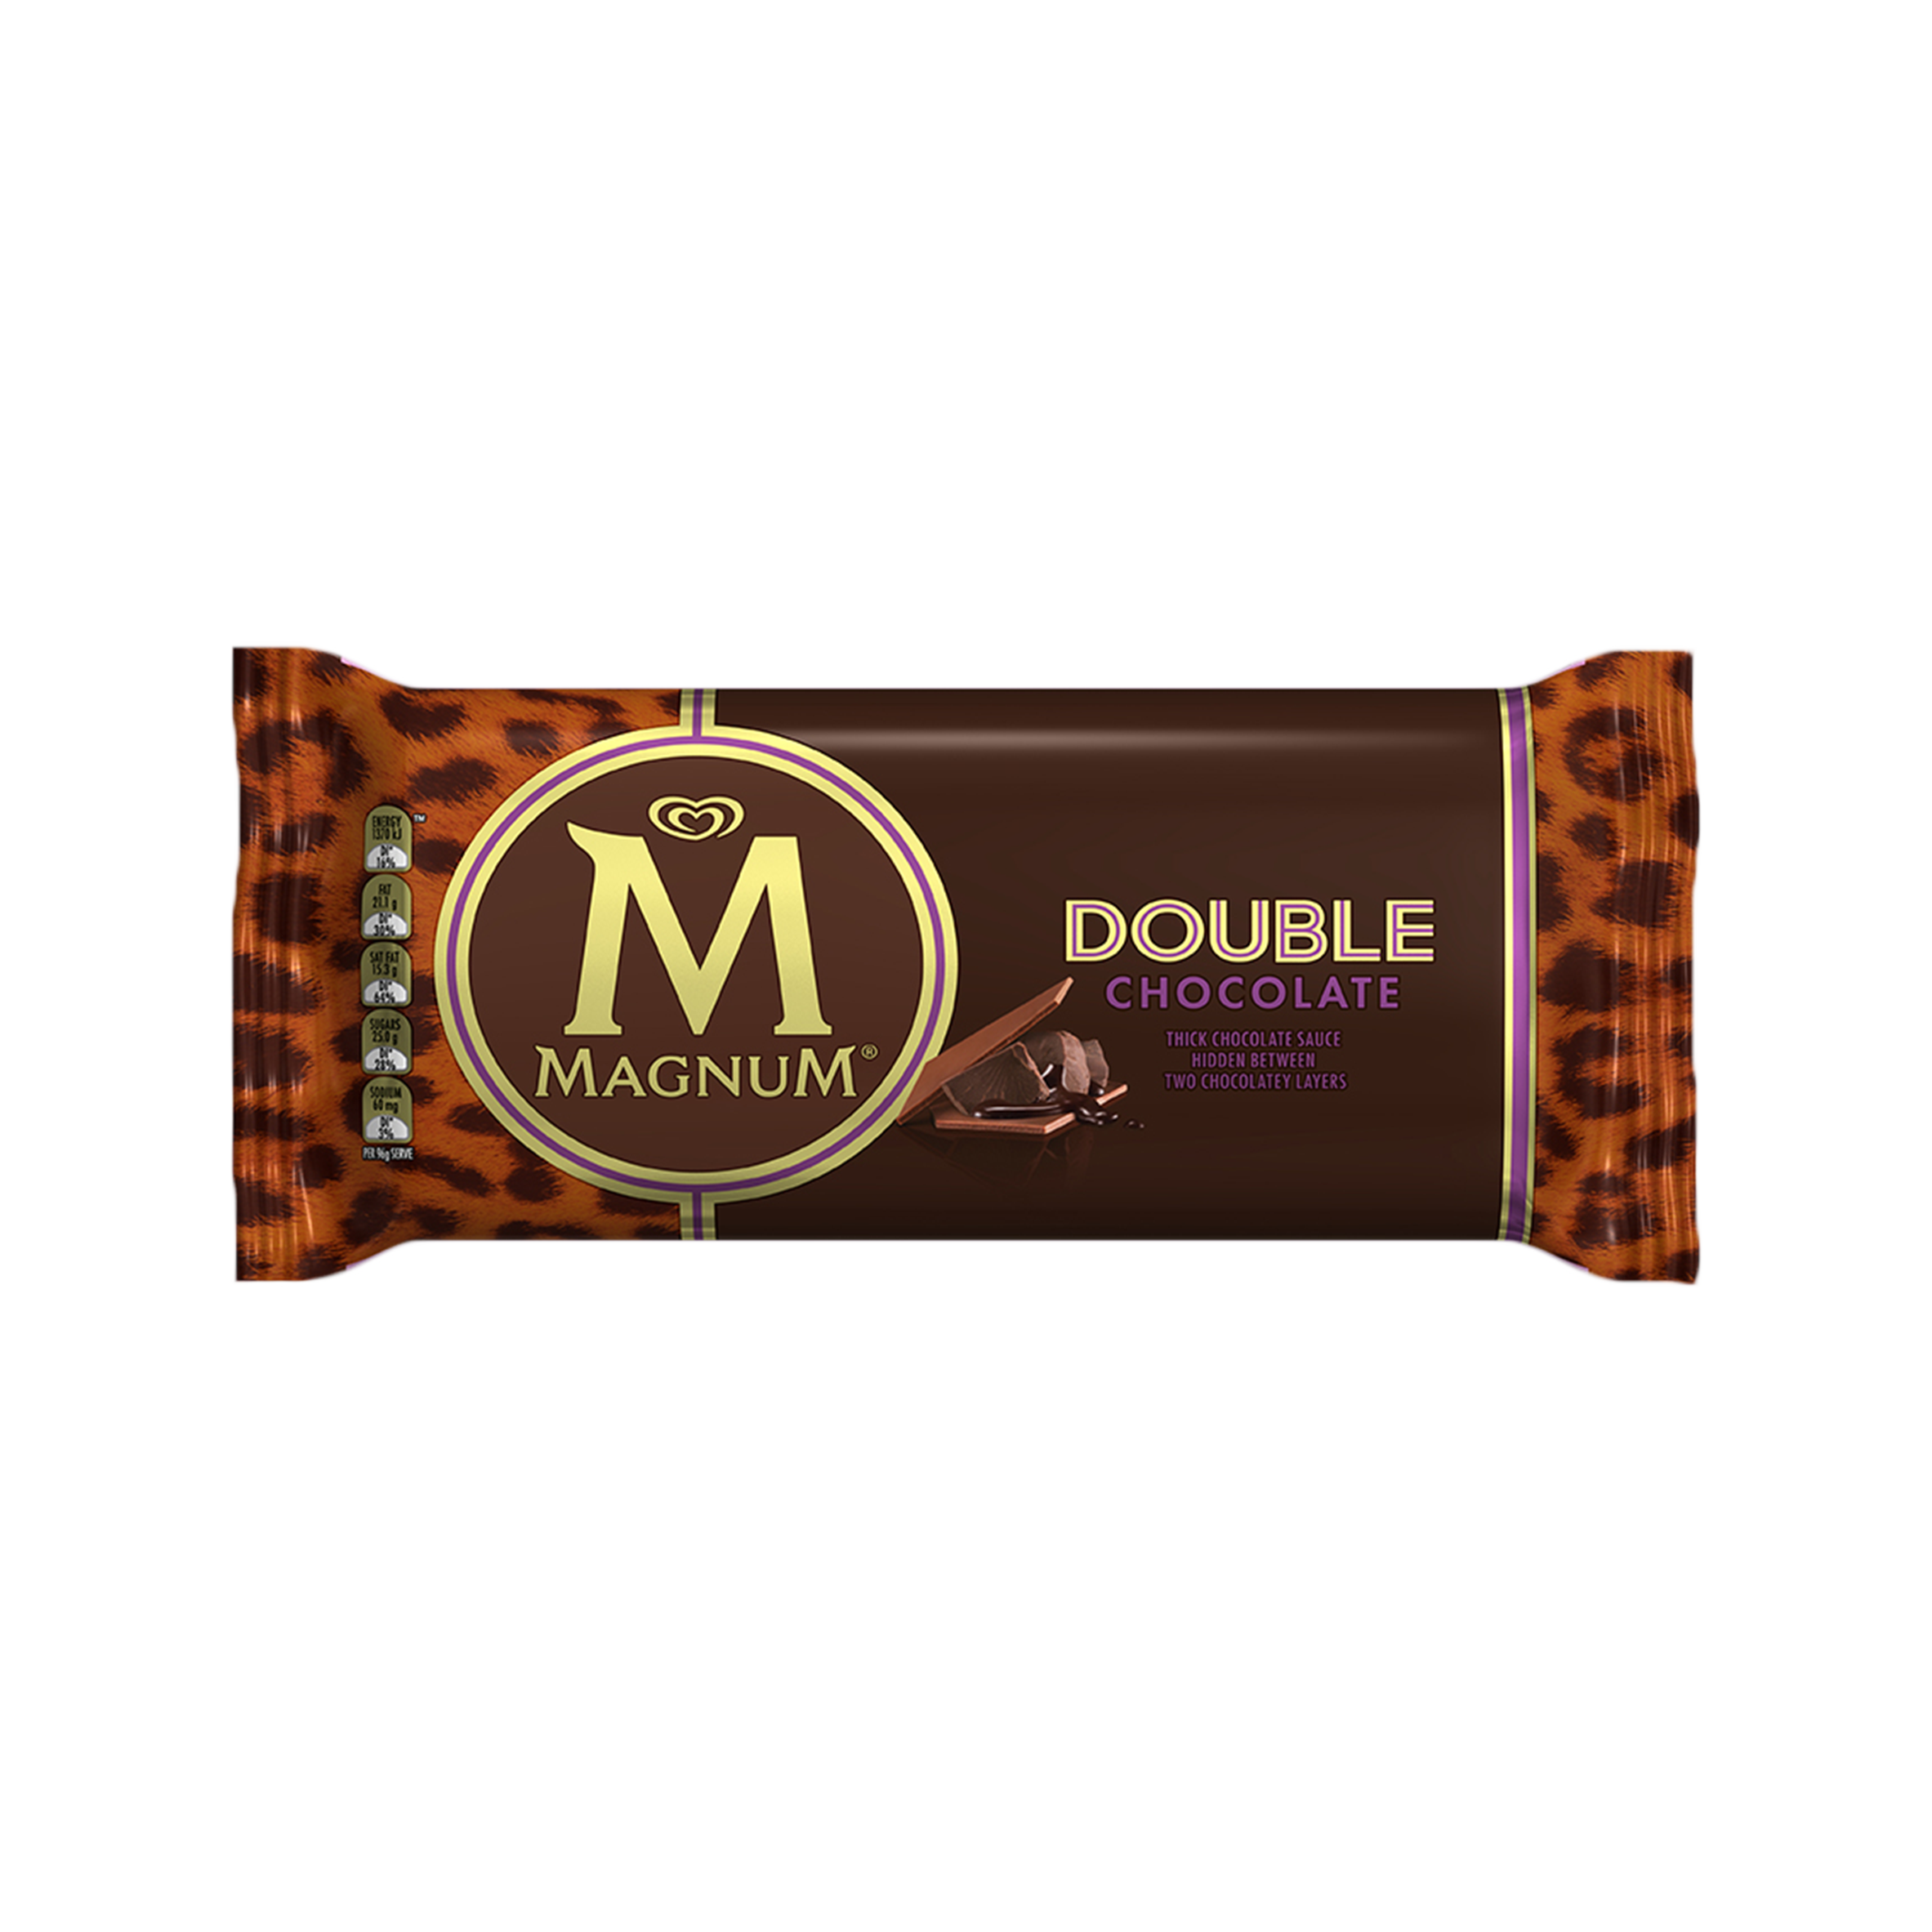 Magnum_Double_Chocolate_2365x2365-1925-1324164.png